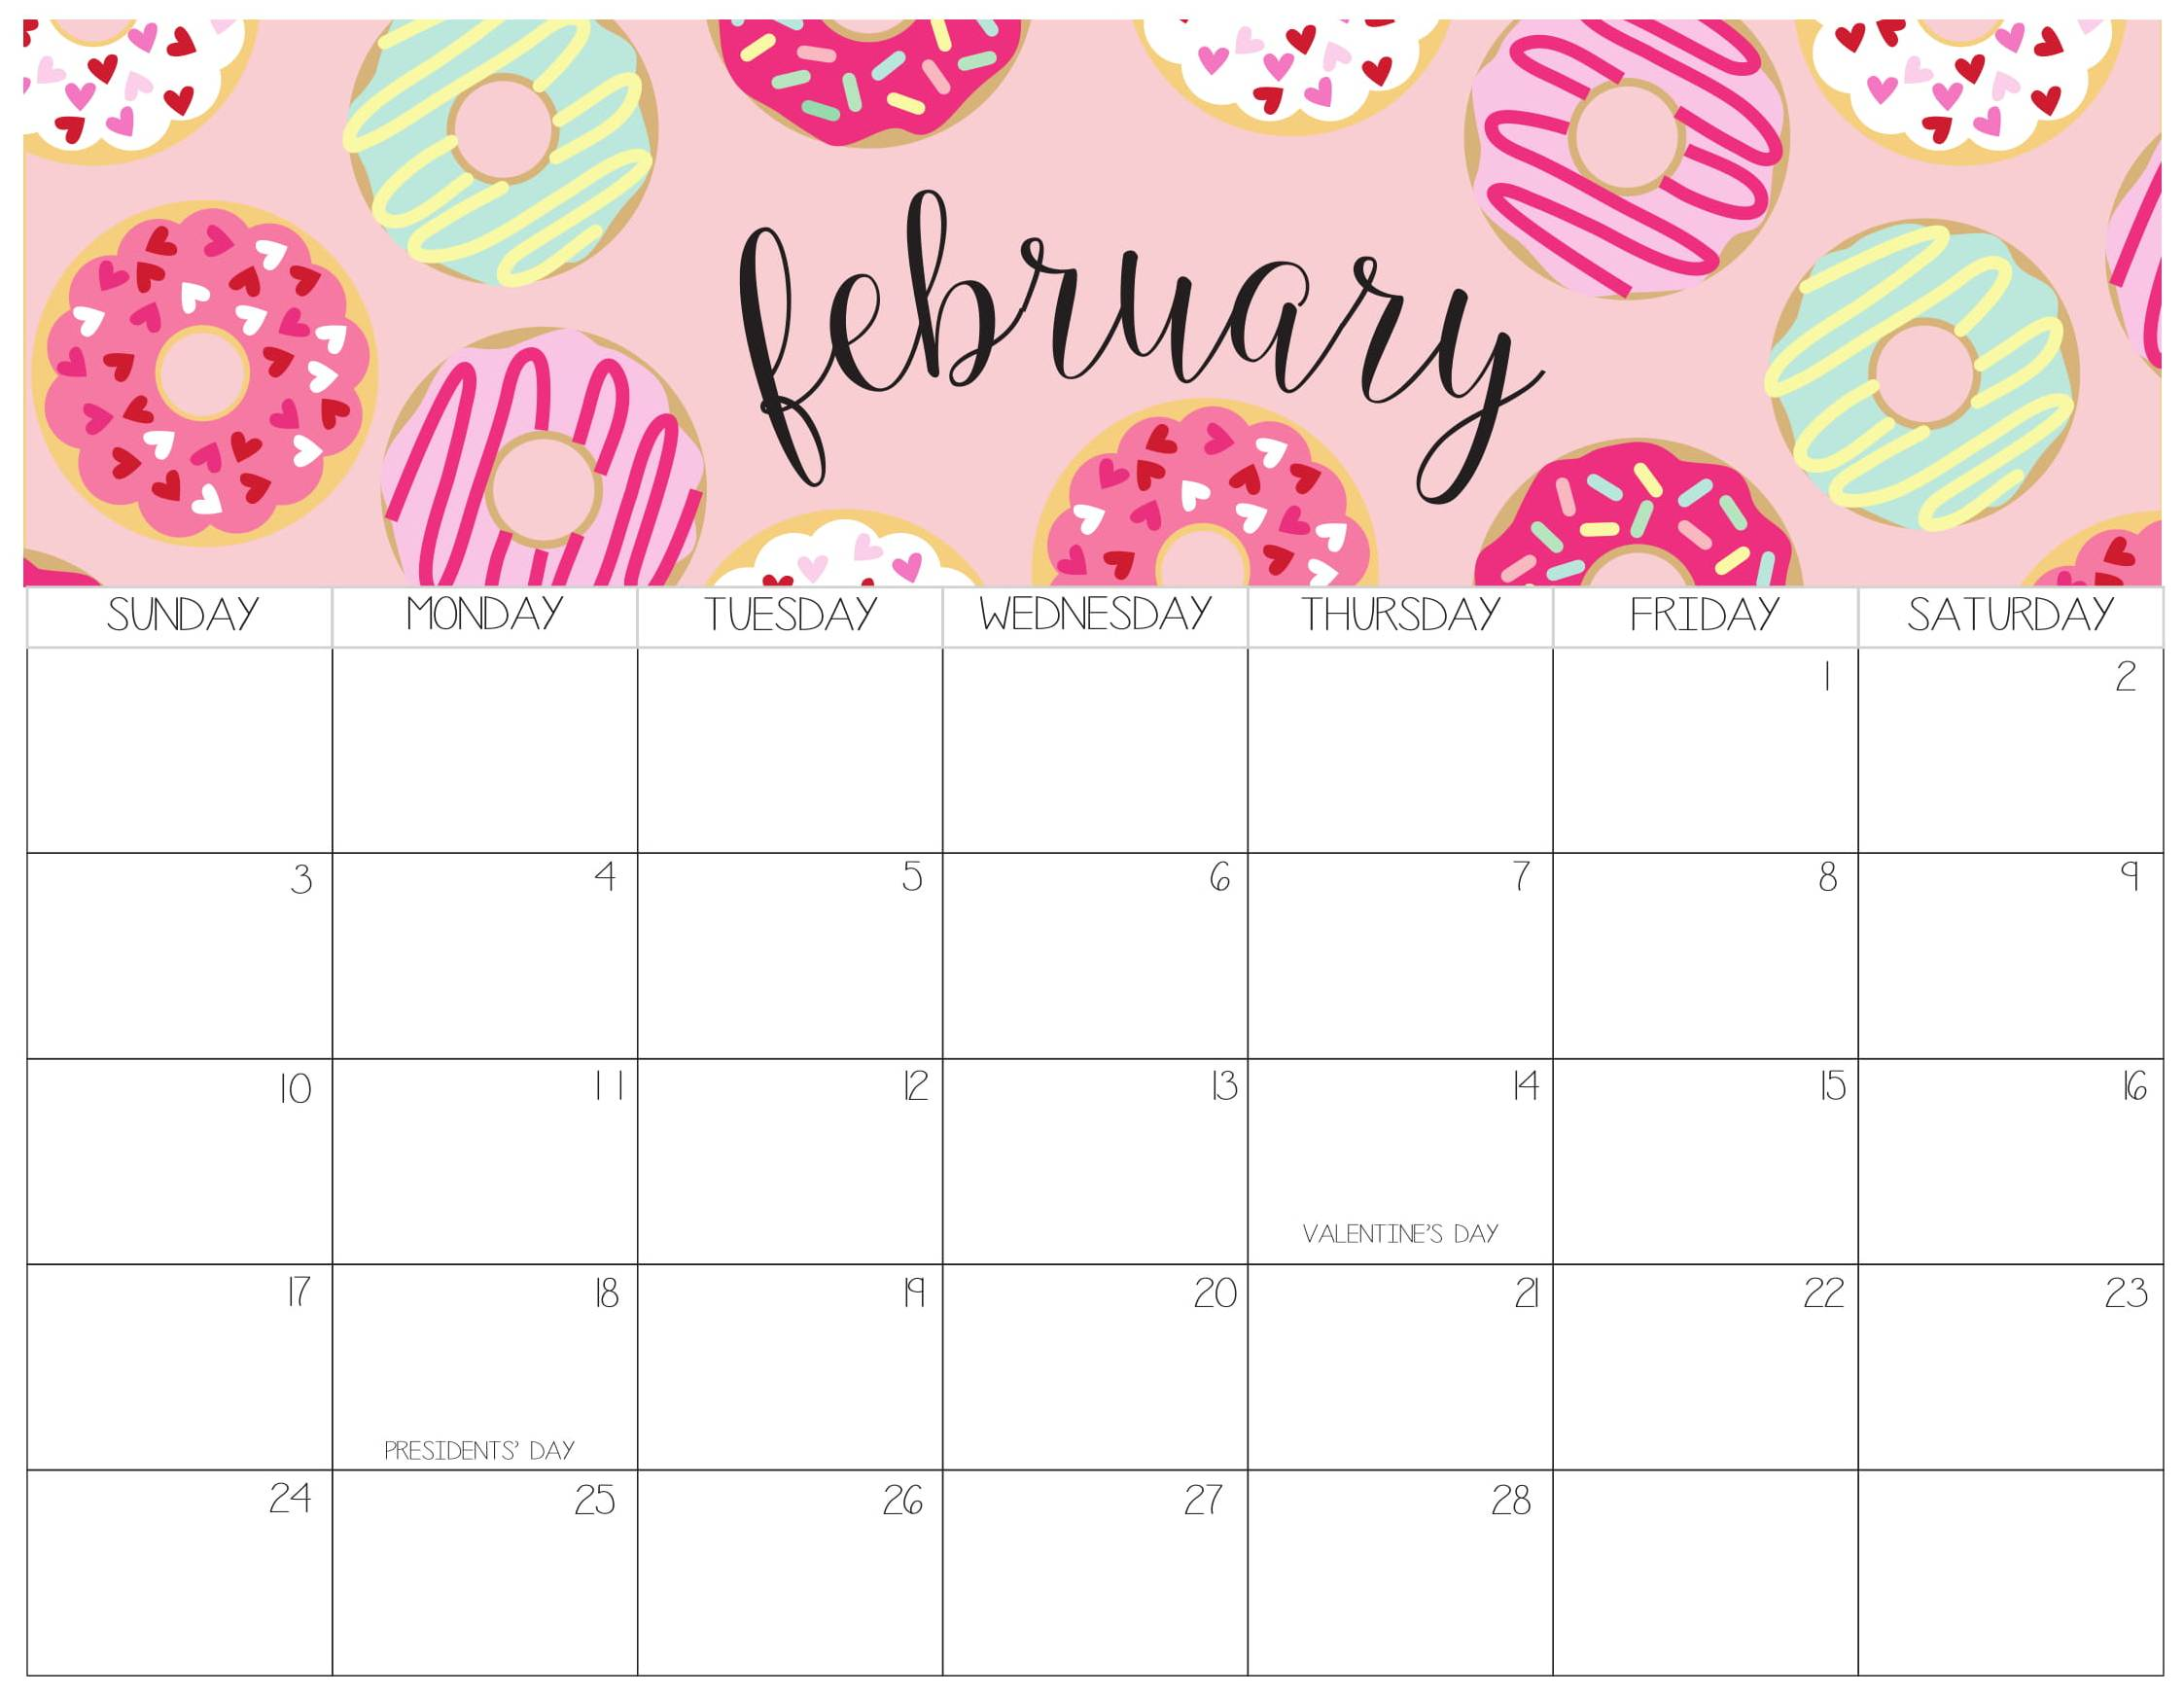 Three Year Calendar Template 2016 to 2018 - Free Printable ...